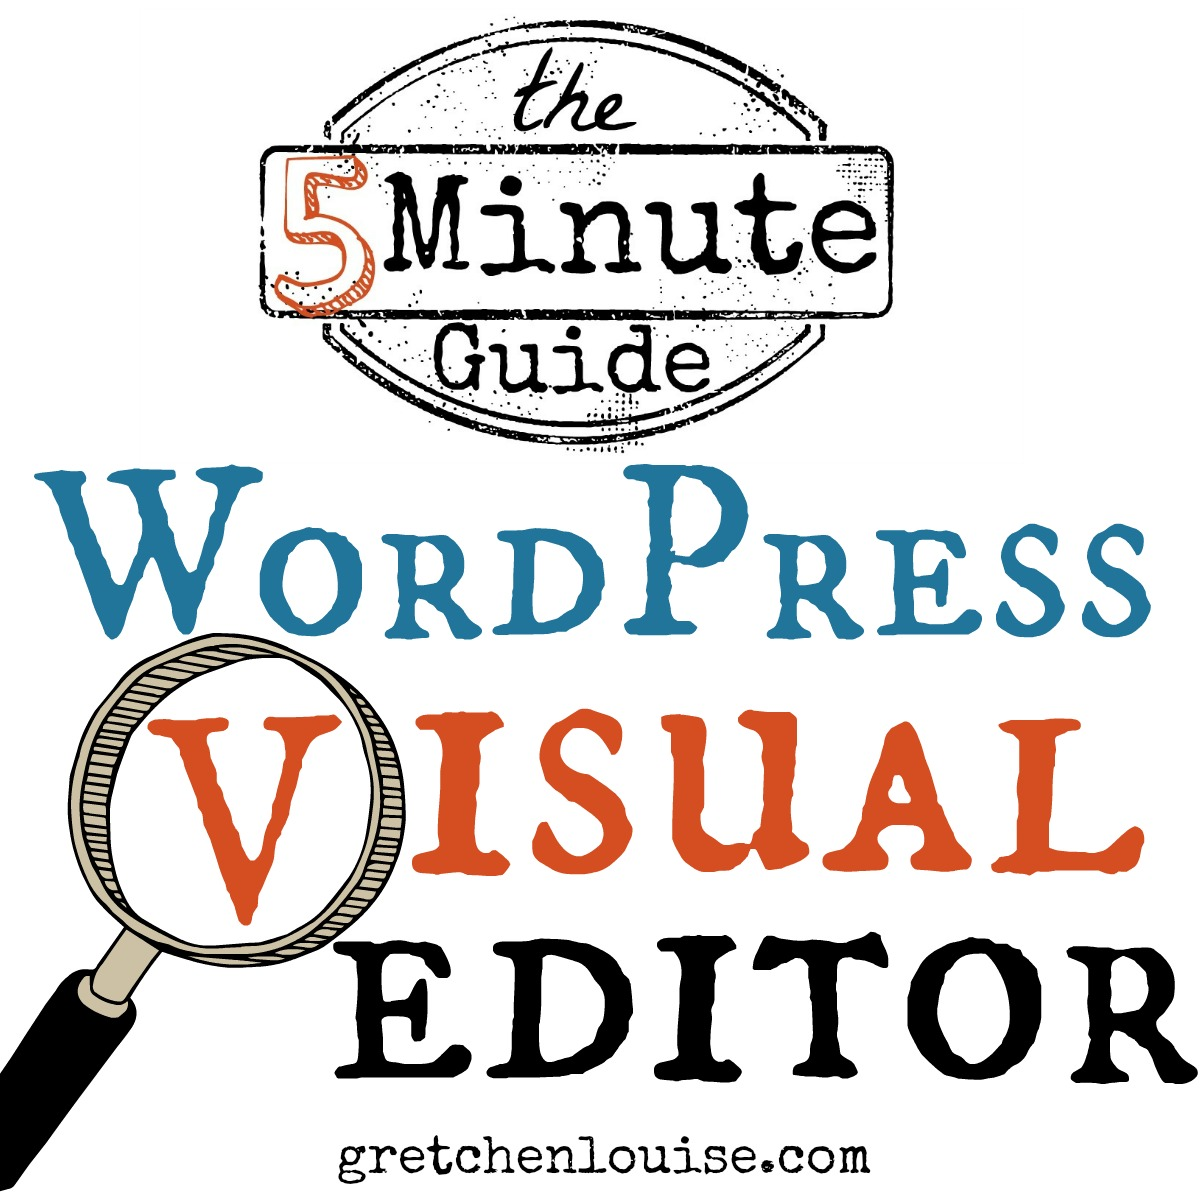 The 5 Minute Guide to the WordPress Visual Editor